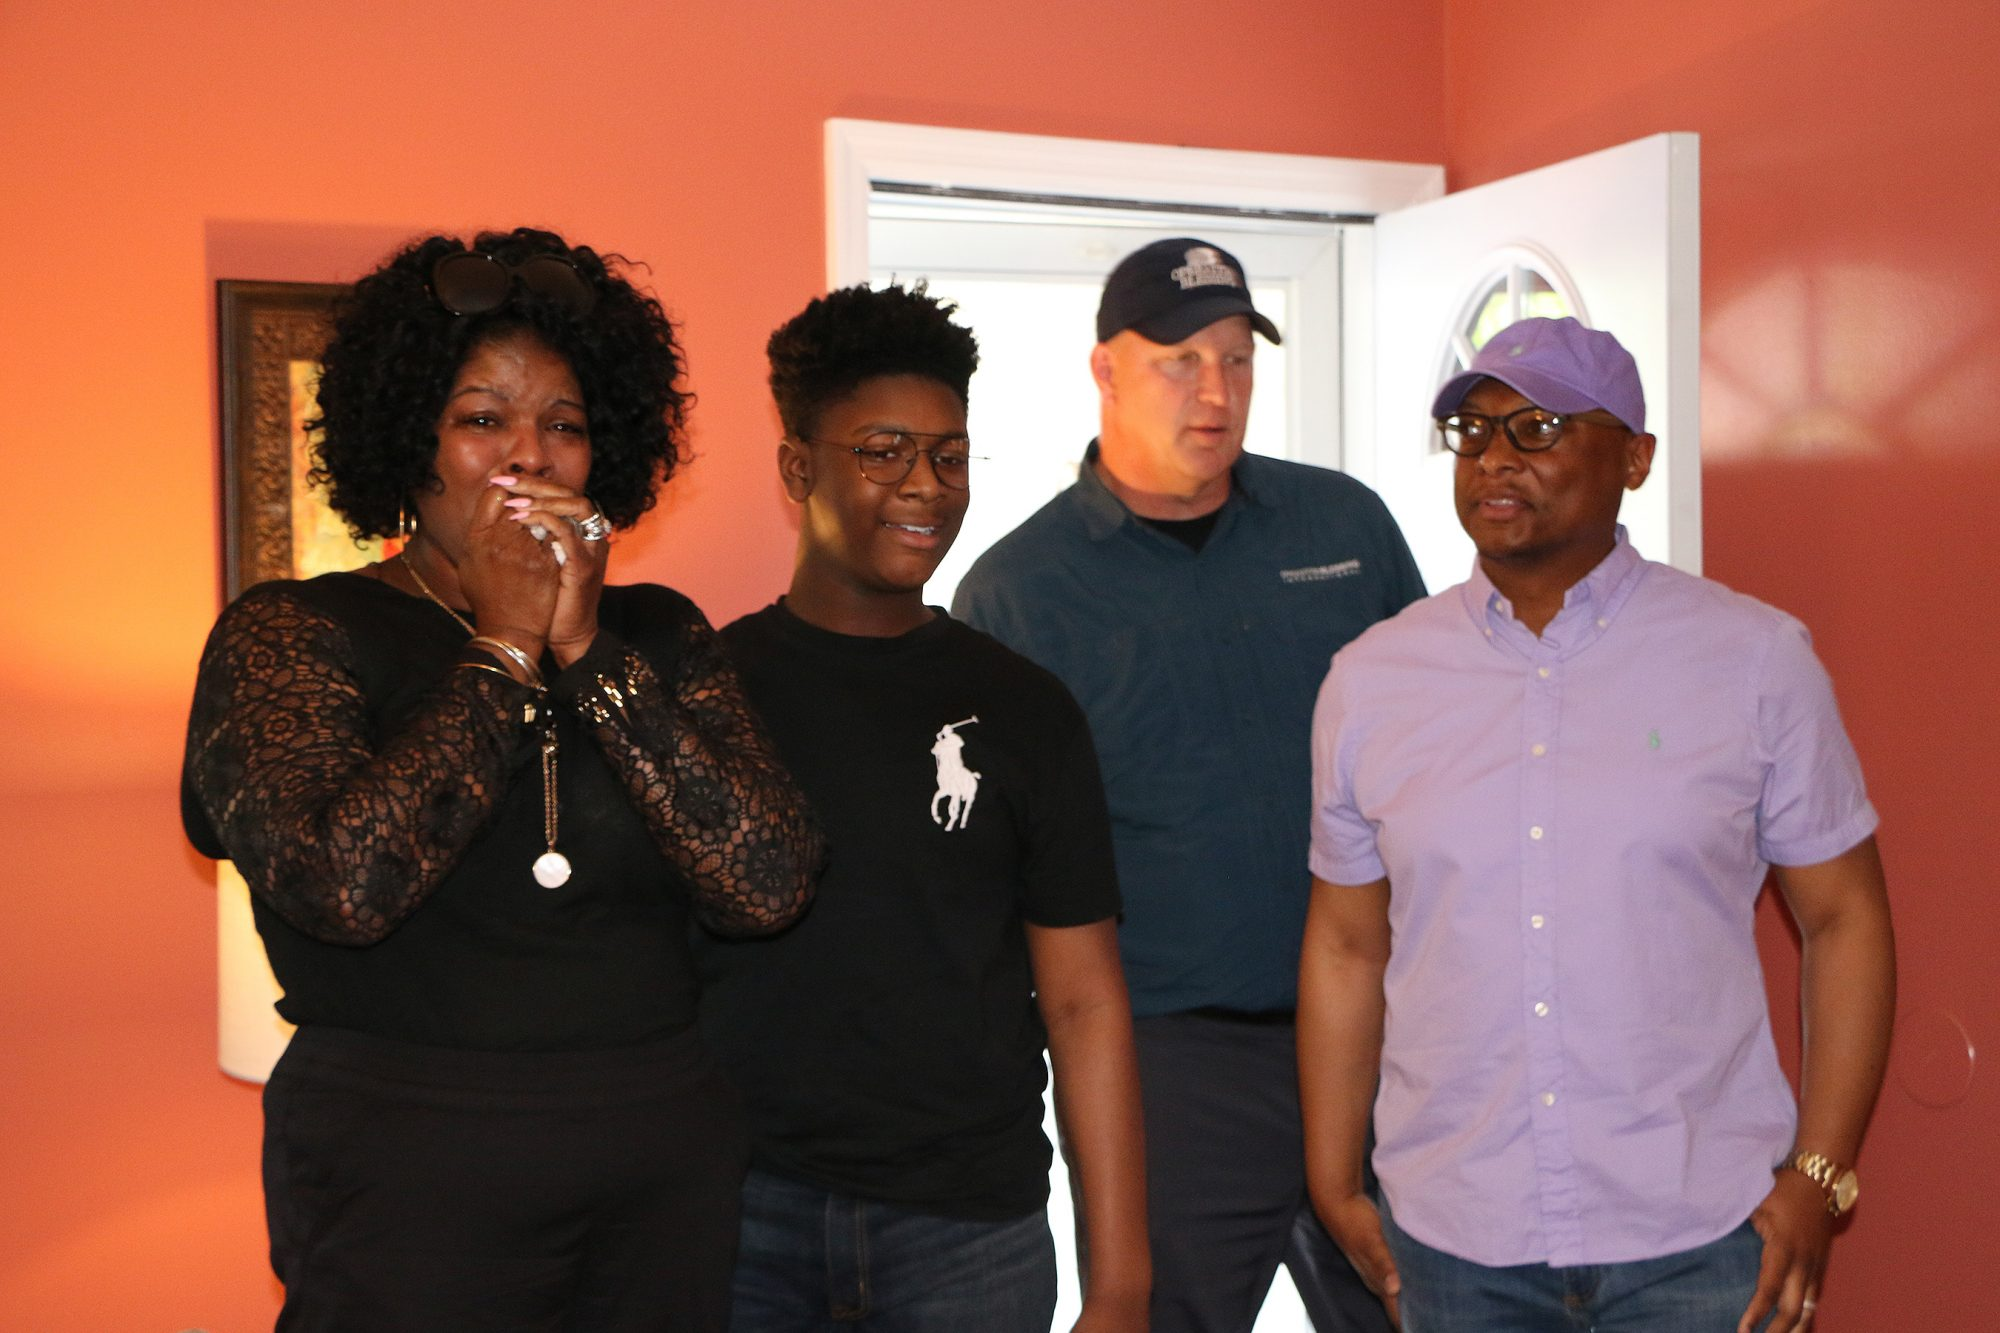 Home Depot Surprises Family with new home